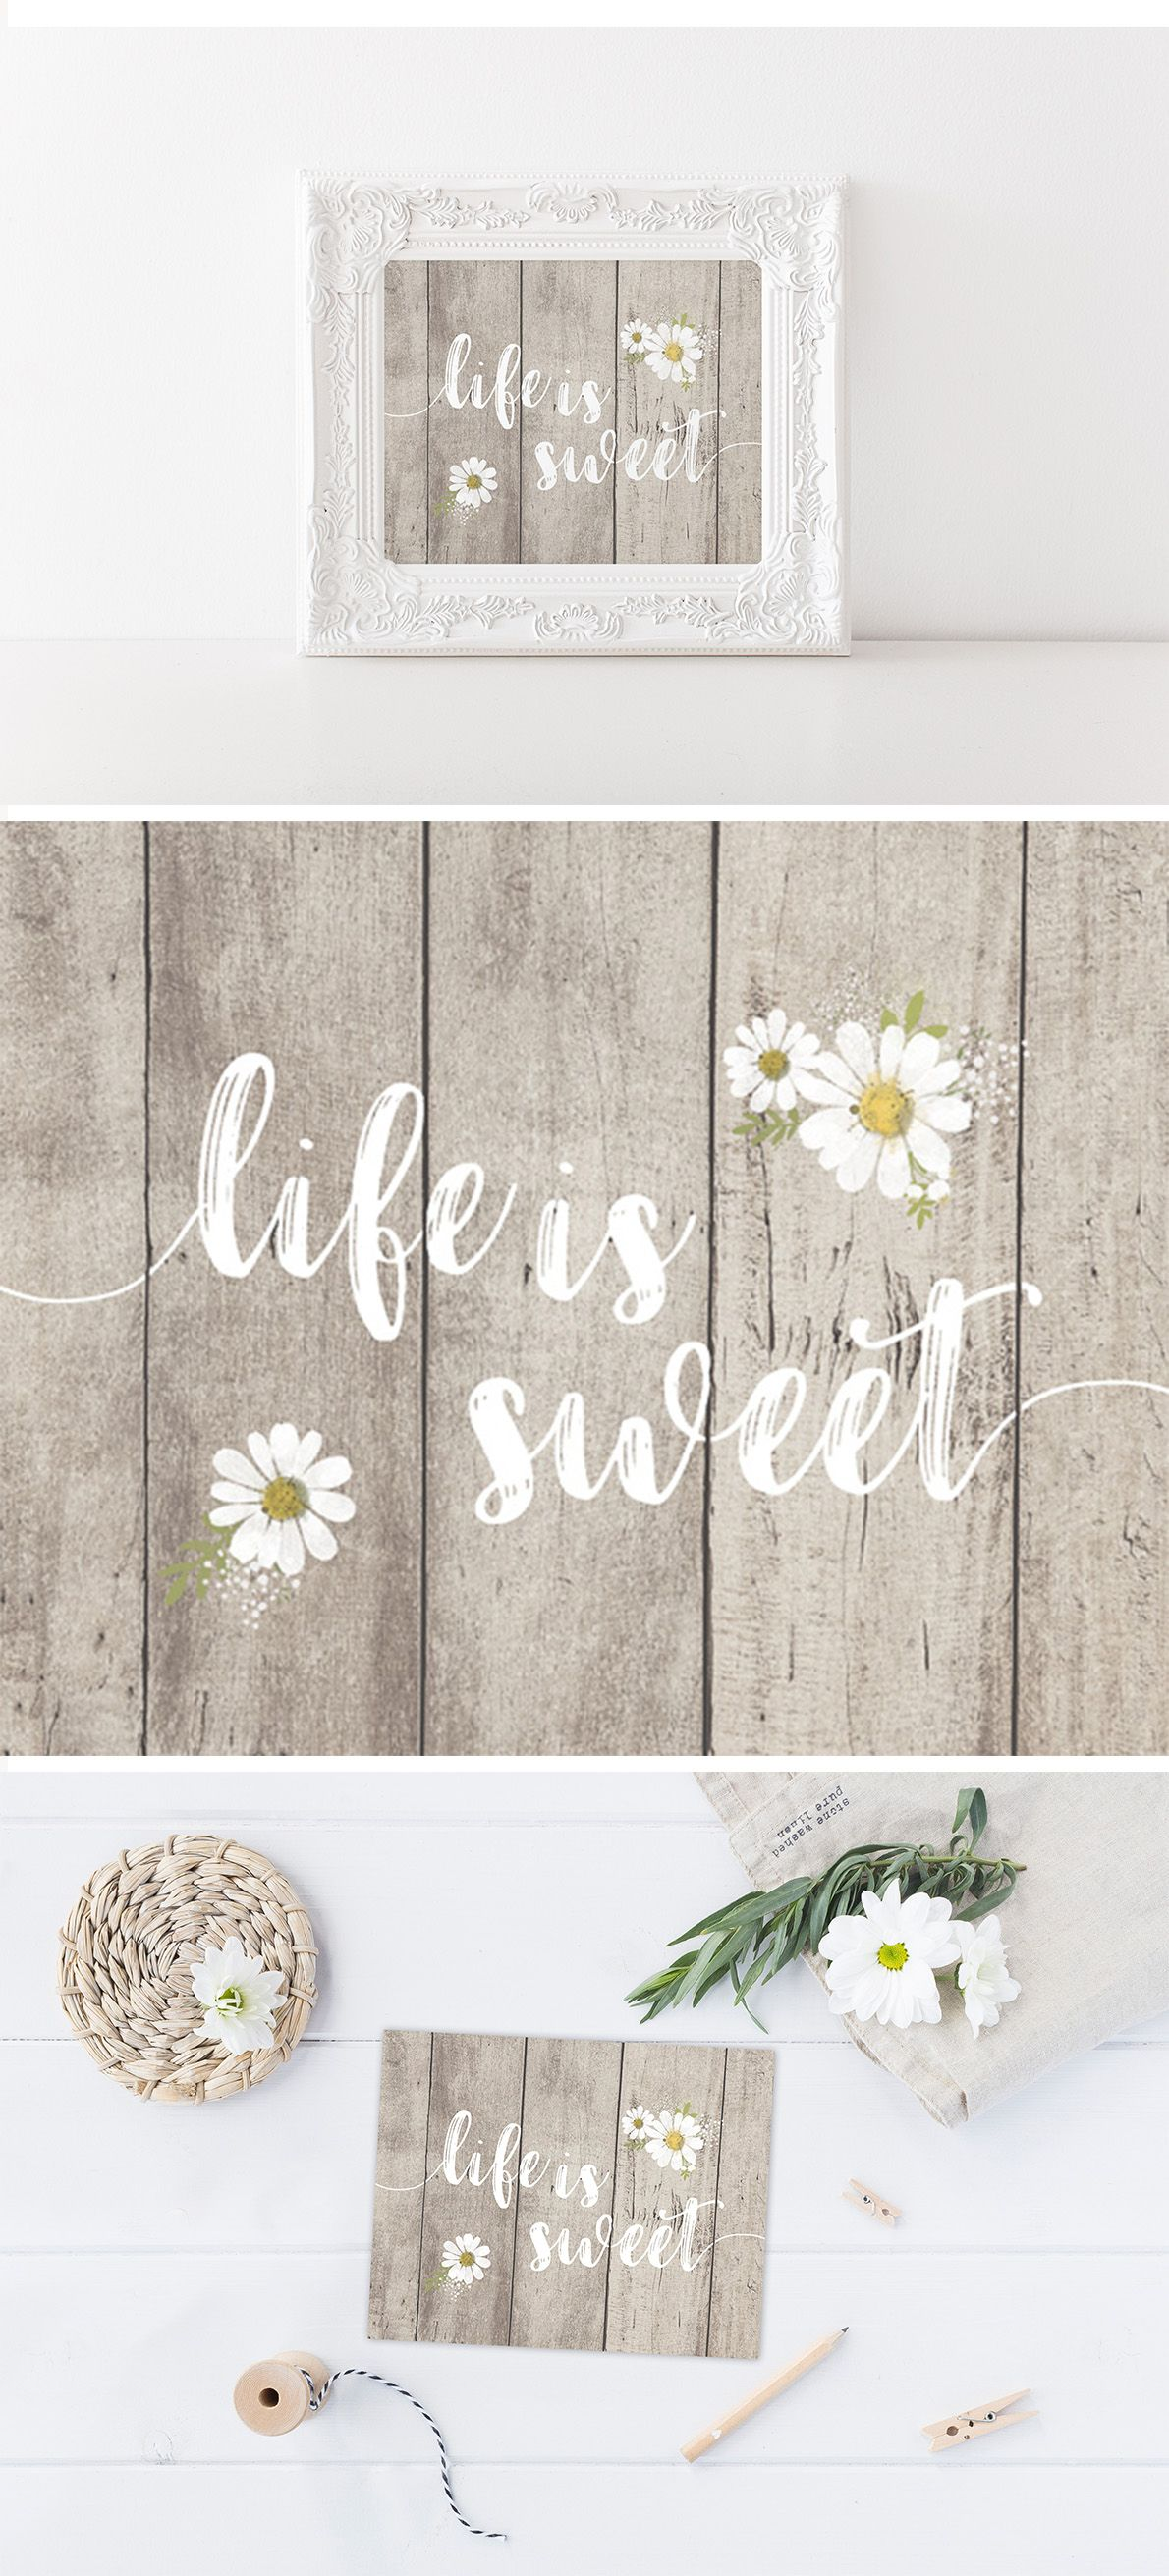 10x10 Girls Bedroom: Life Is Sweet - Lettered Print